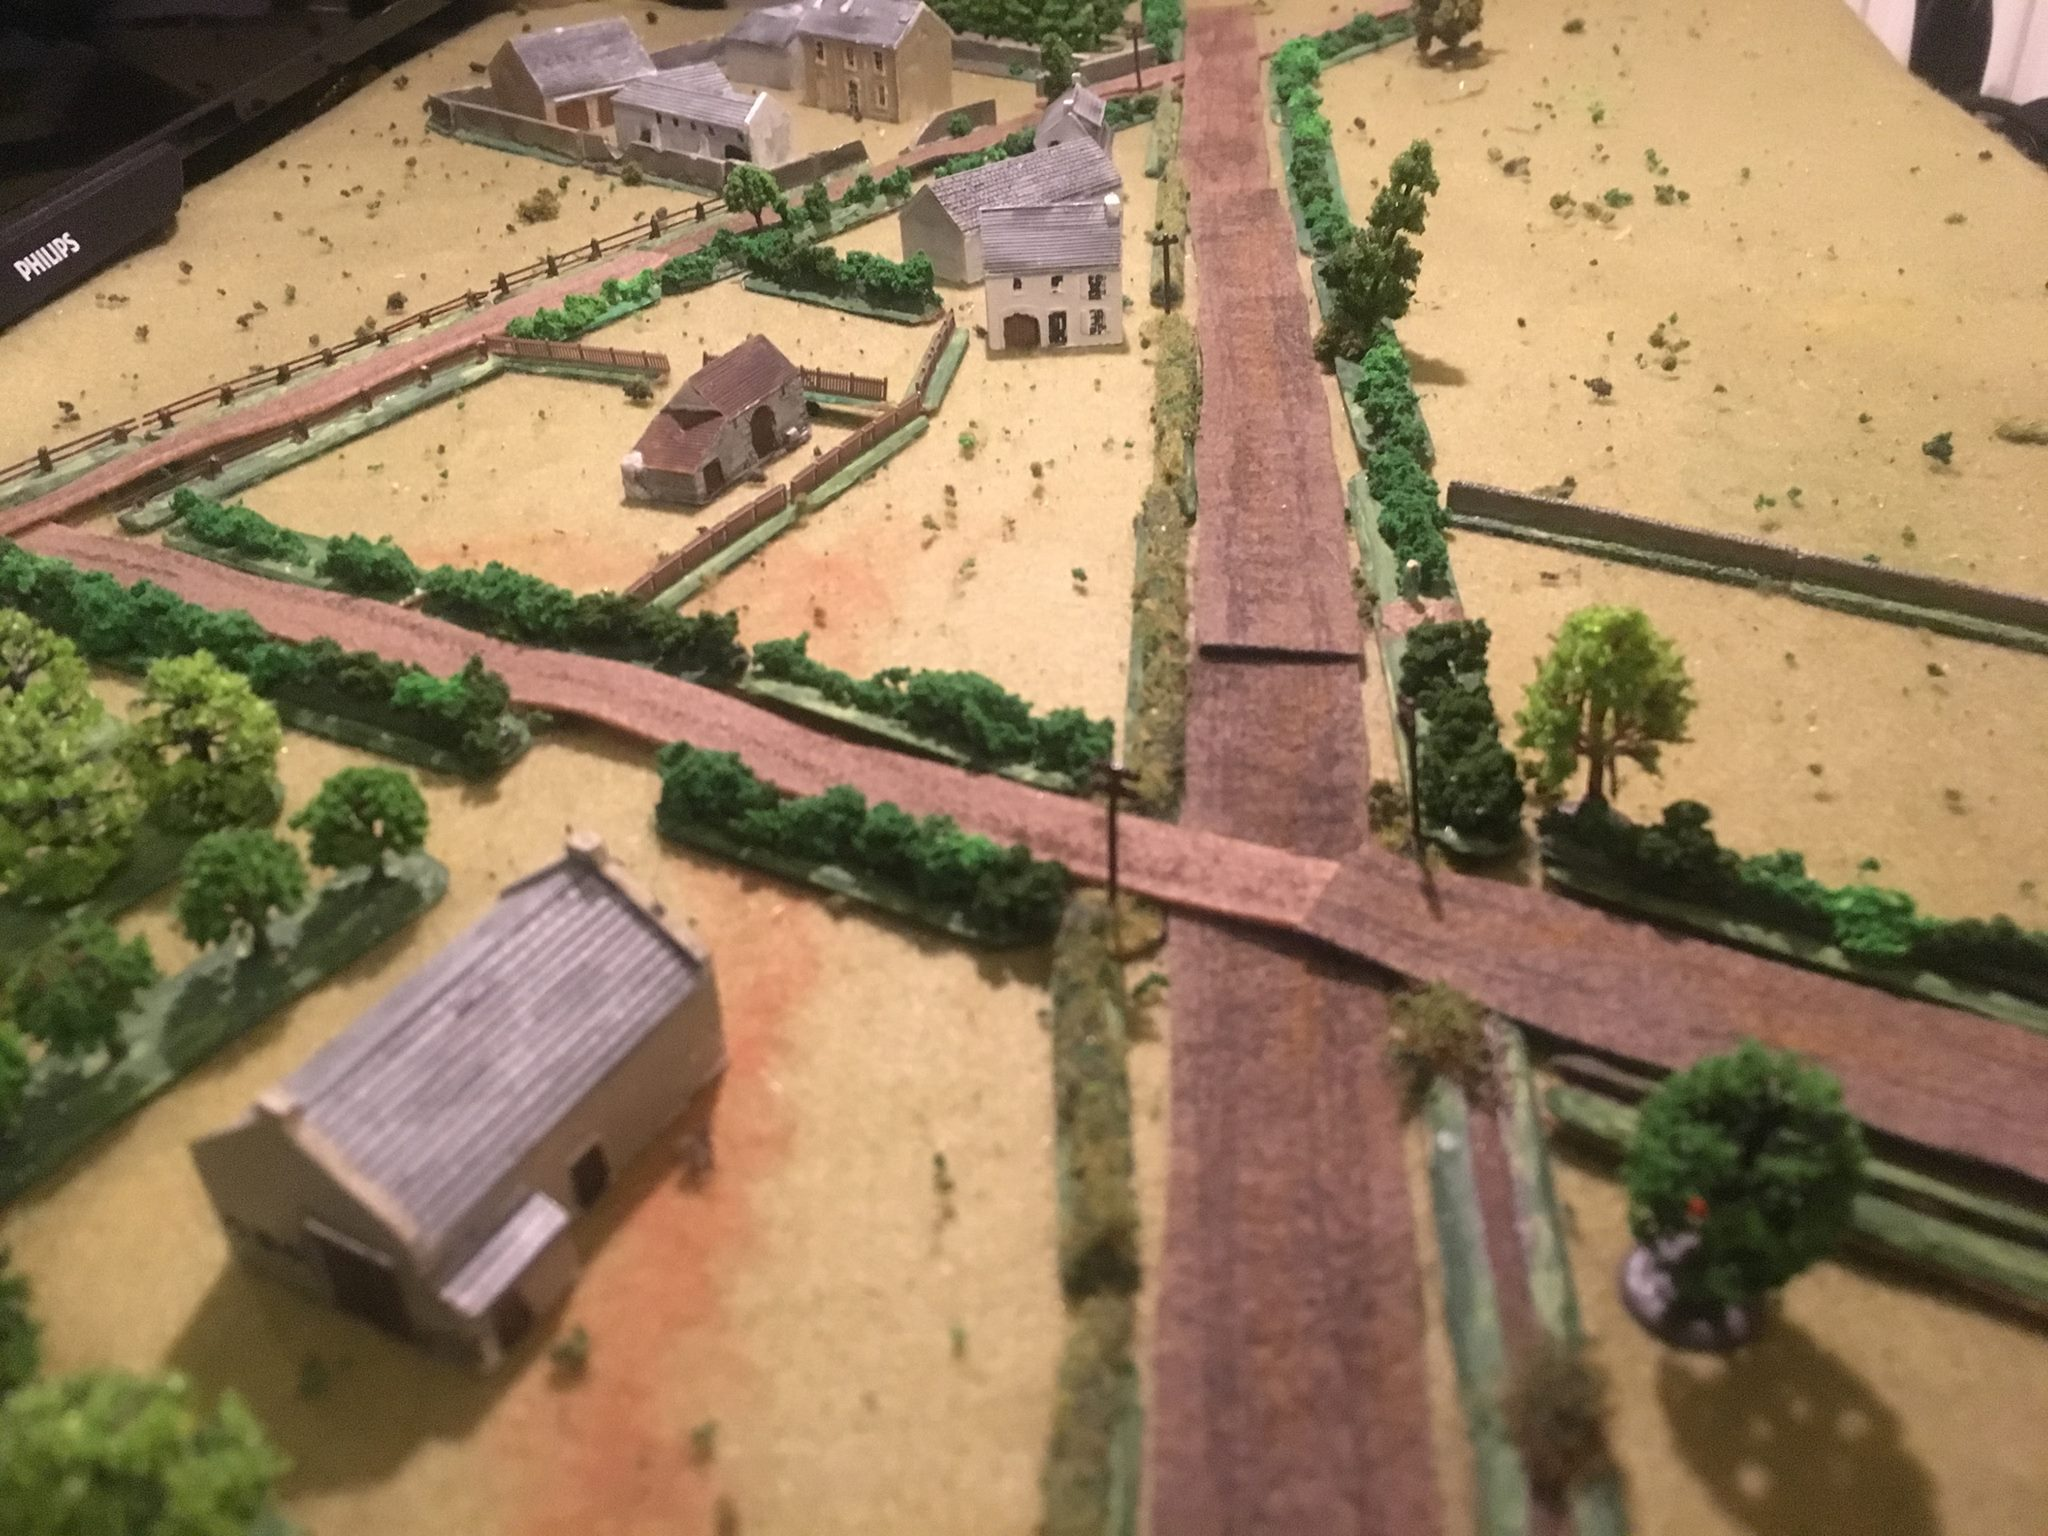 A view from the British end of the table showing the main road and the large walled farm complex in the distance.  The British plan was to push two platoons up:  No 1 platoon on the right from the orchard, and No 3 platoon cautiously up the main road. A section on the right would cover the open fields beyond the low wall.  The Universal carriers with Vickers MMGs and 75mm armed Shermans would provide support. The Firefly with attendant 75 gun Sherman would stalk any German armour.  No 2 platoon was held in reserve in the middle.